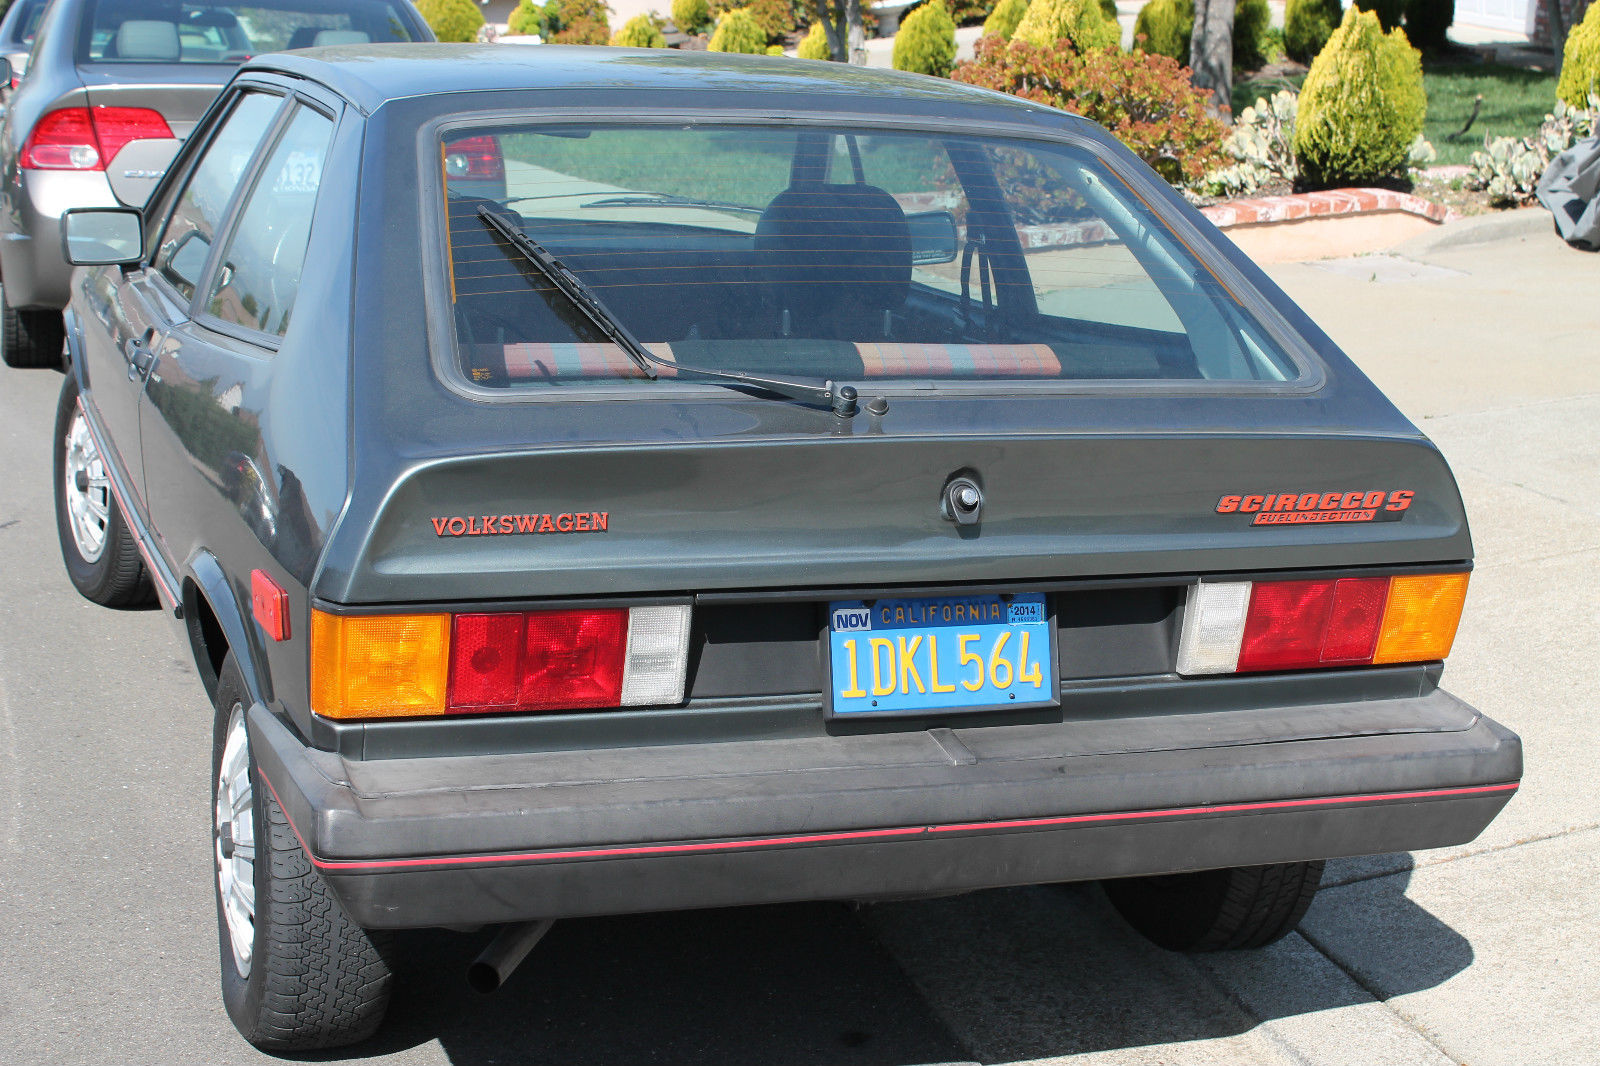 Ghibli S Cousin 1981 Vw Scirocco S Rusty But Trusty